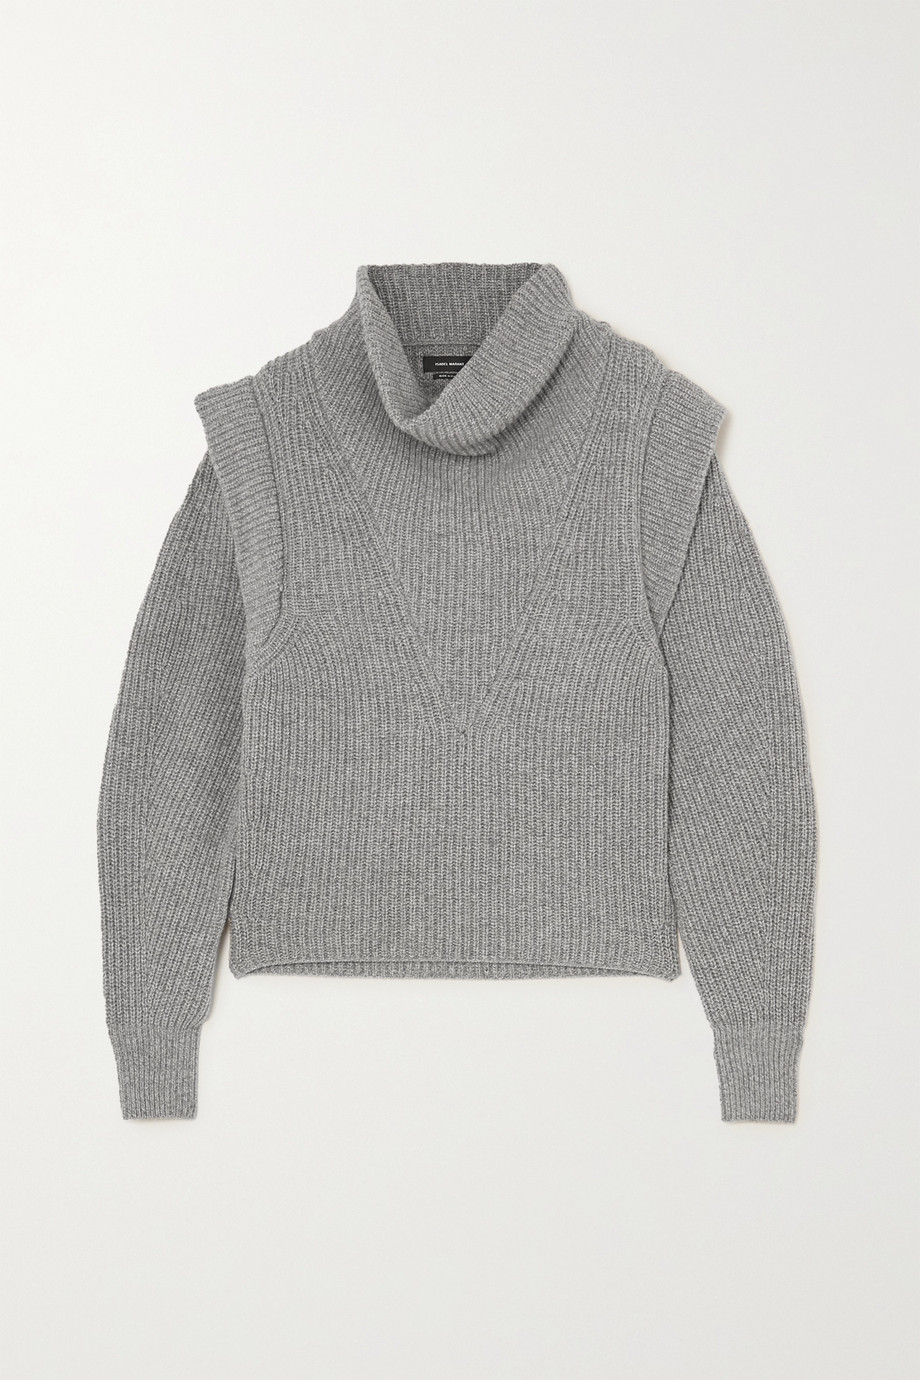 Isabel Marant Poppy ribbed cashmere and wool-blend turtleneck sweater